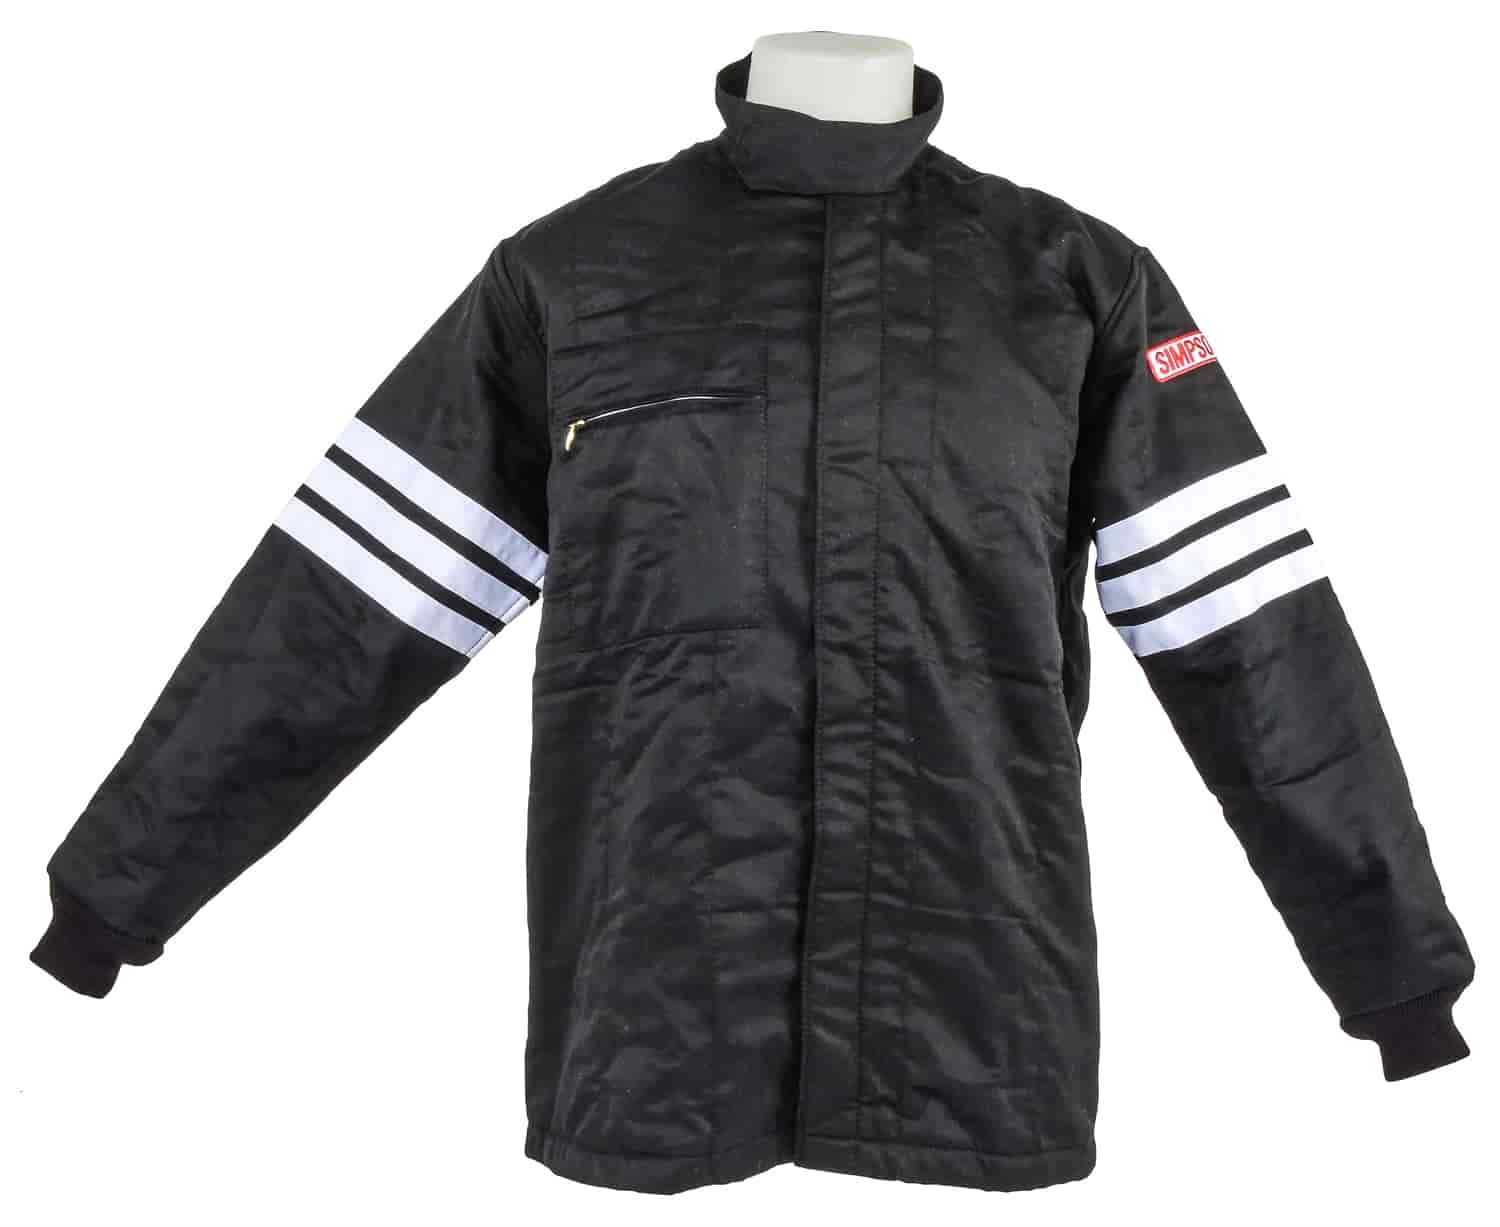 Simpson 0302212 - Simpson Classic 3-Stripe SFI-1 Driving Jackets, Pants and Suits